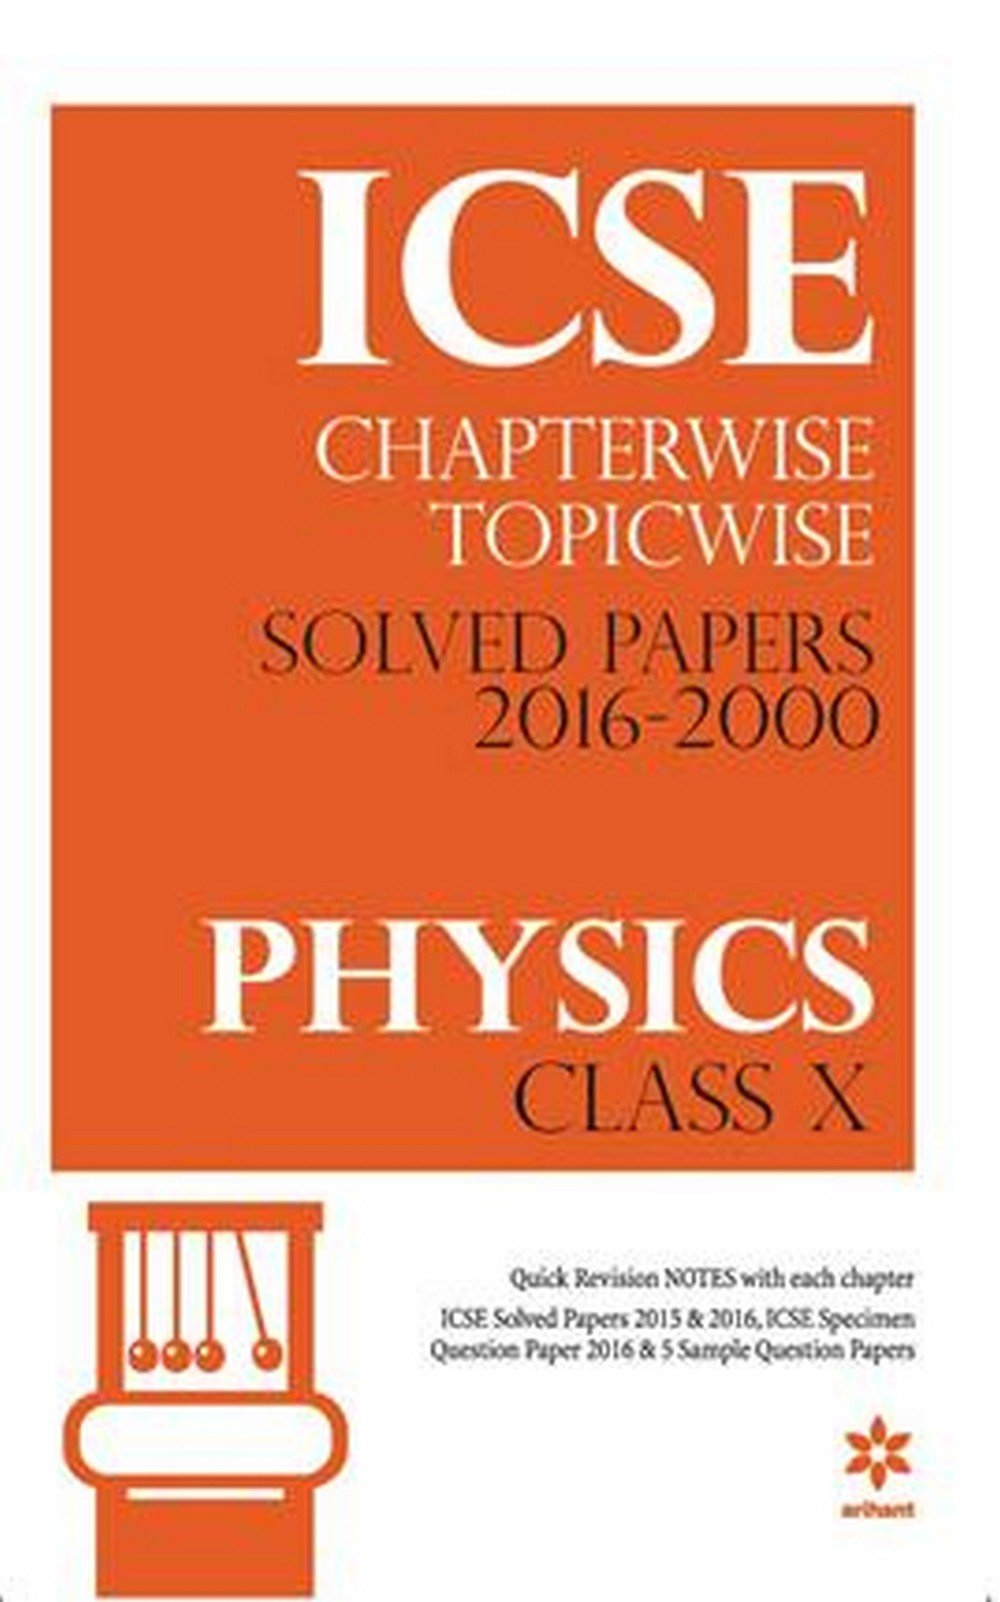 icse essay topics English exam essay topics encourage and empower students to articulate their thoughts and ideas they also encourage research and help students communicate their unique perspectives.